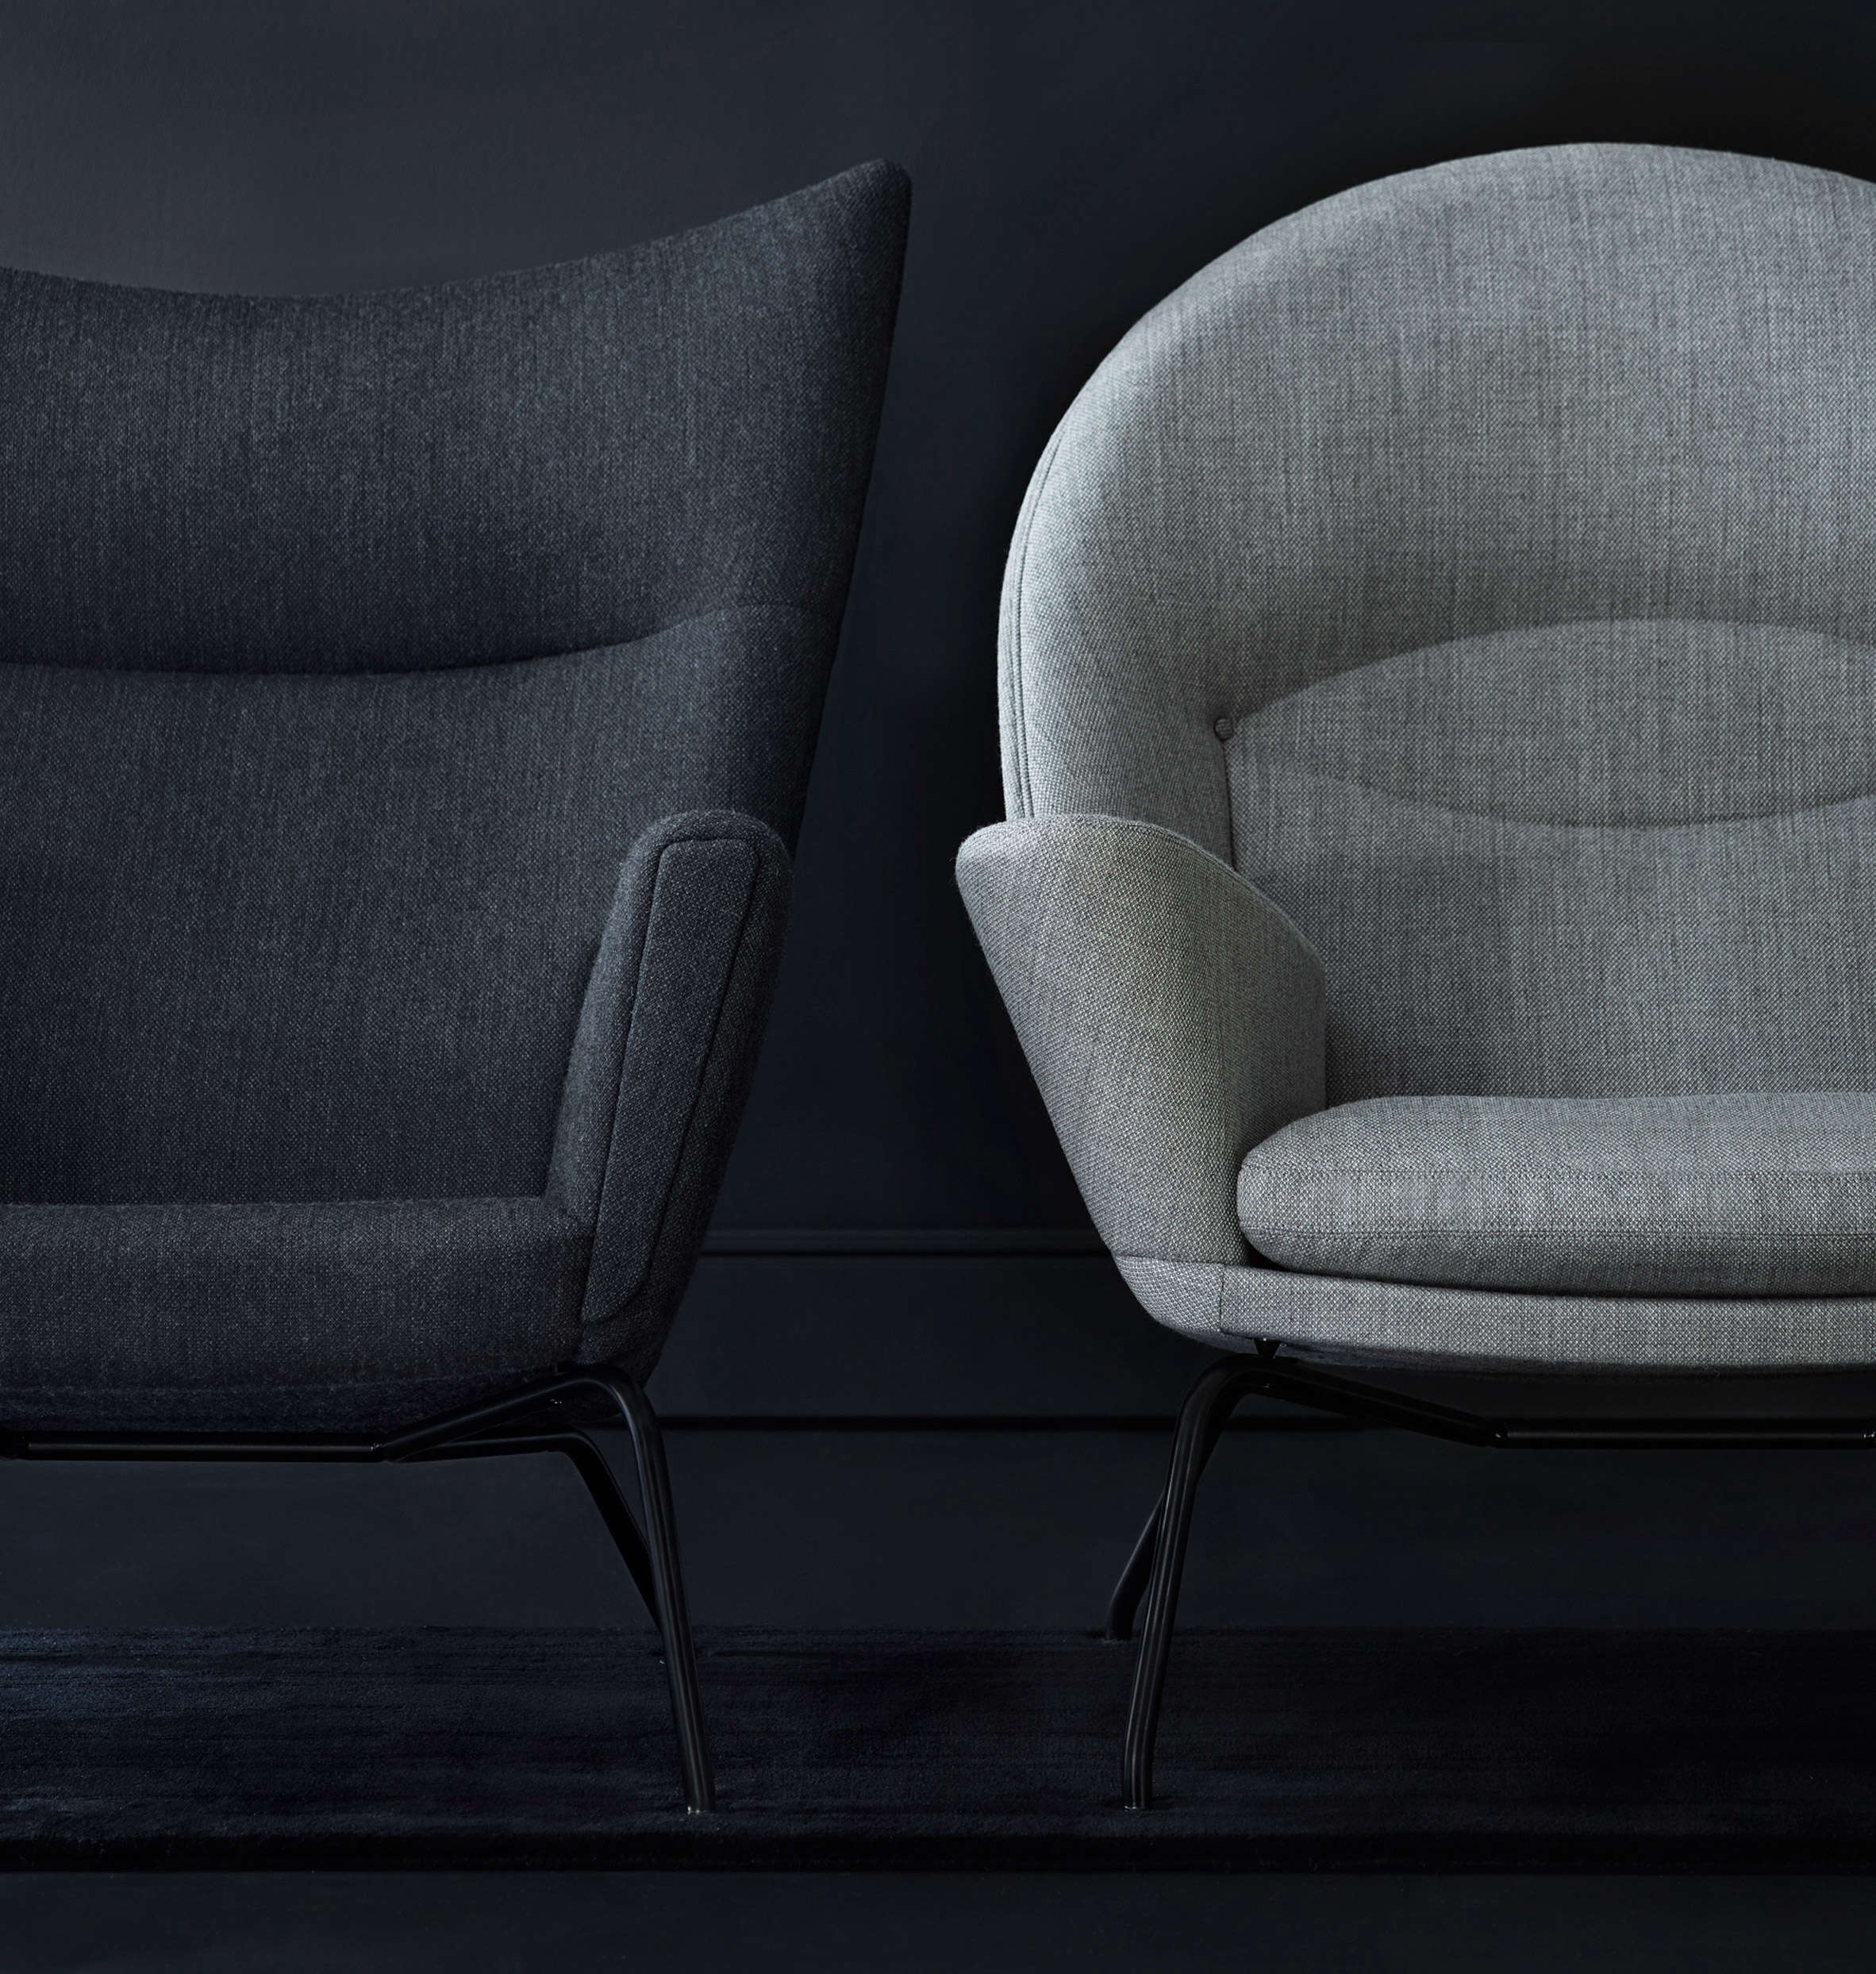 Dark Shadows: The Limited Edition Black Collection From Carl Hansen